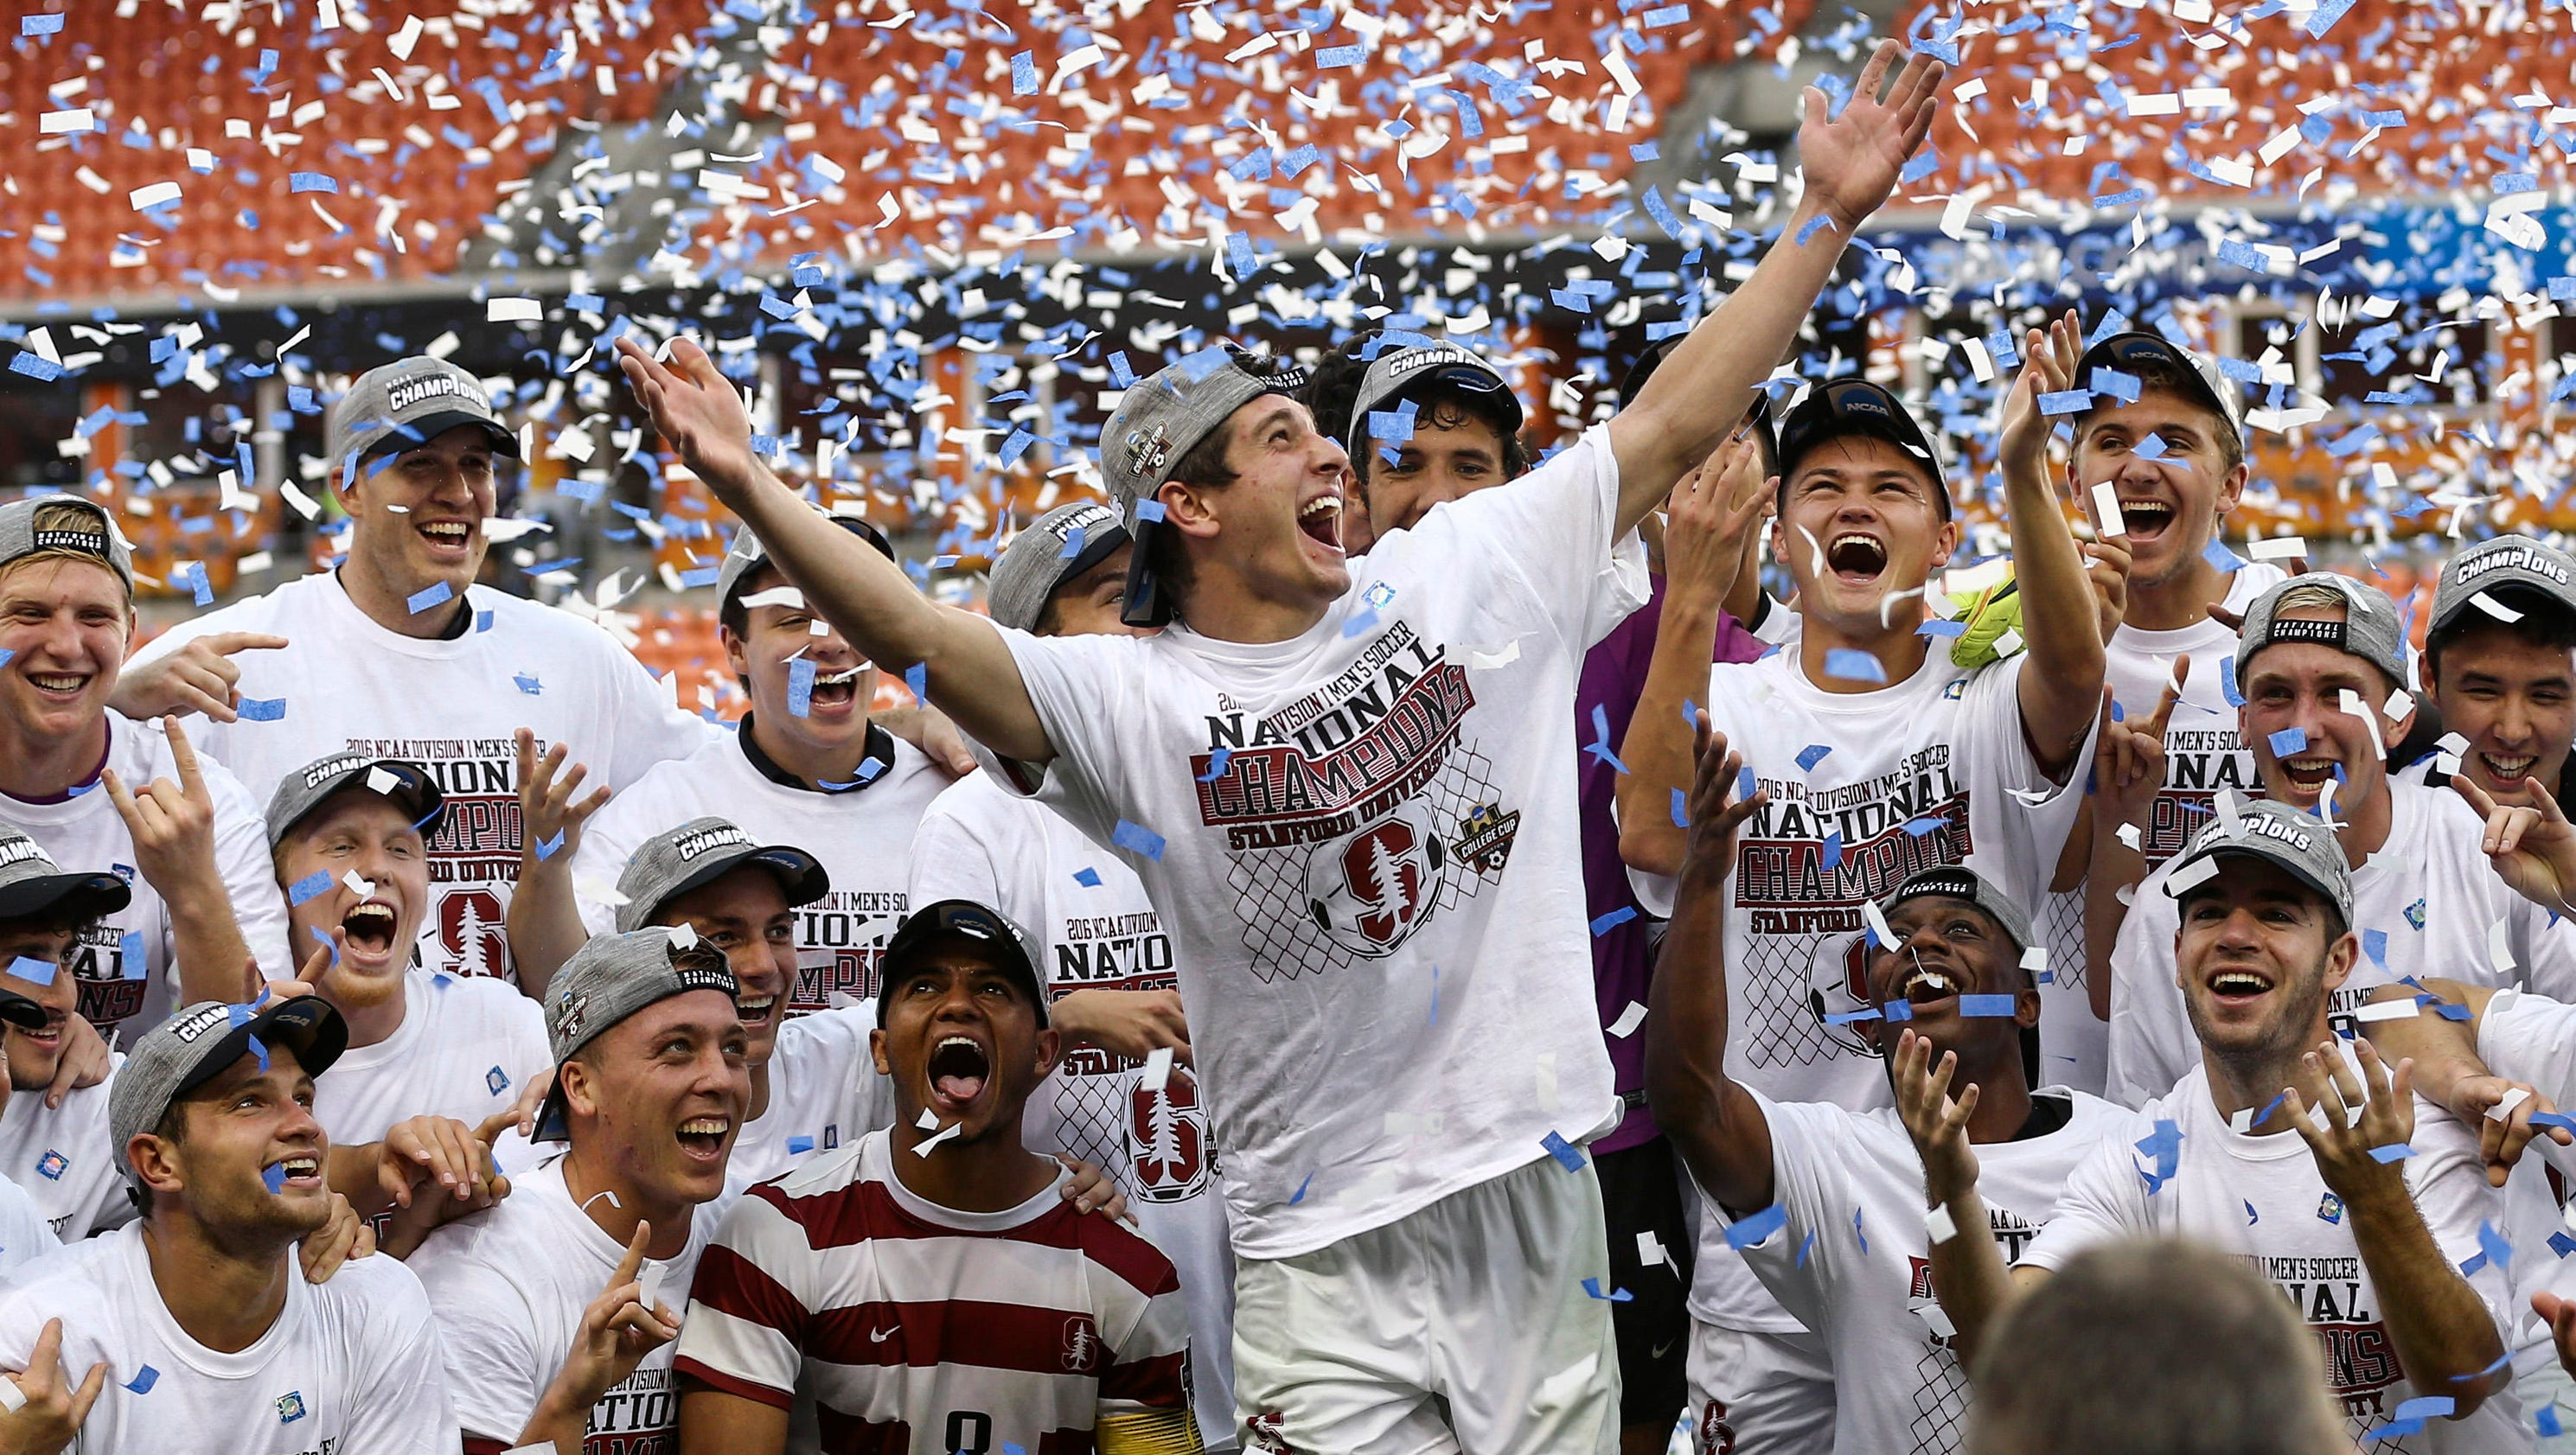 Stanford men win second straight soccer championship